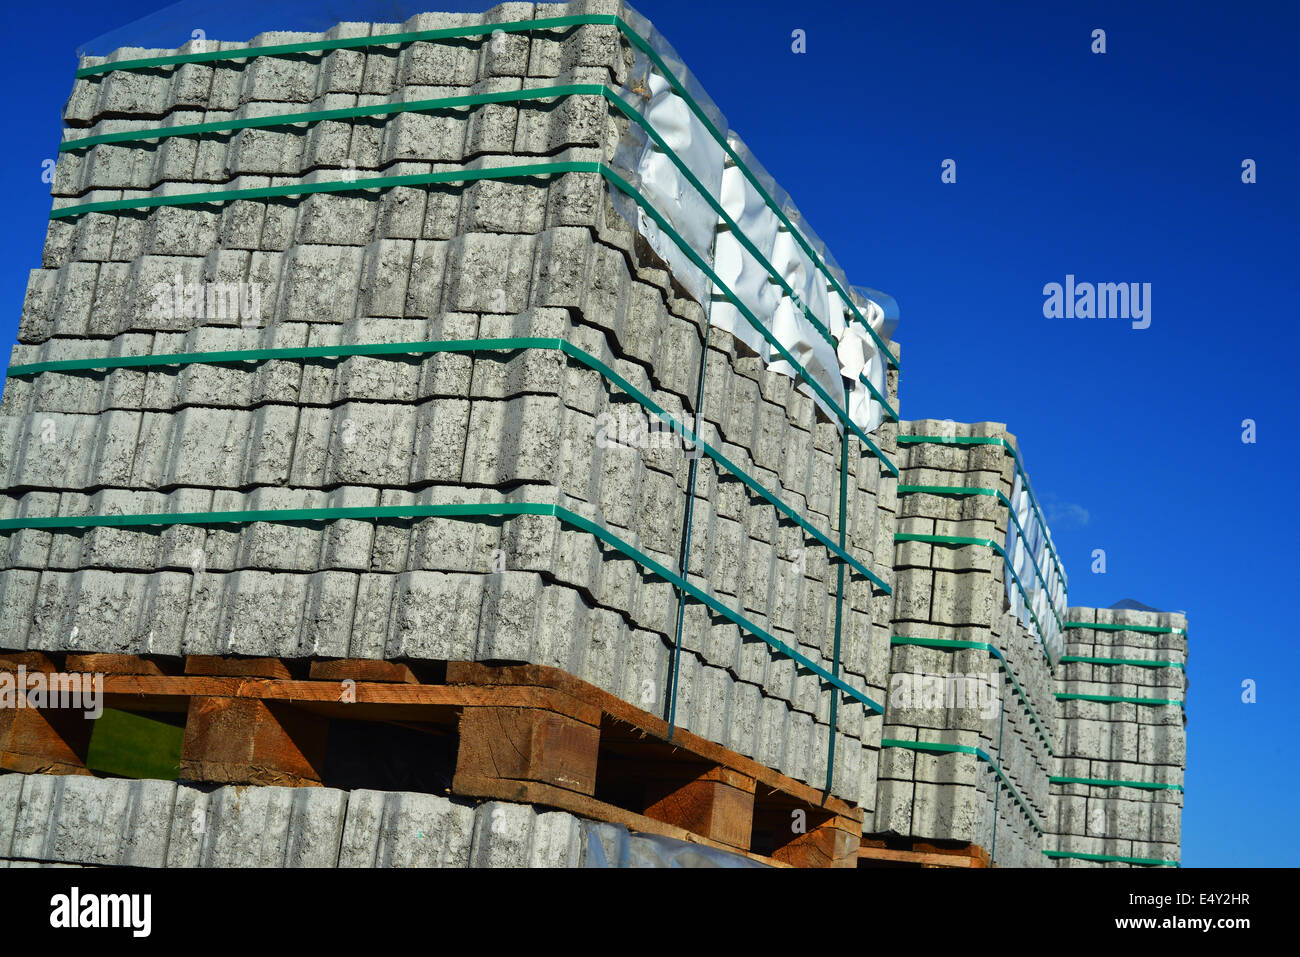 h verbundsteine stock photos & h verbundsteine stock images - alamy